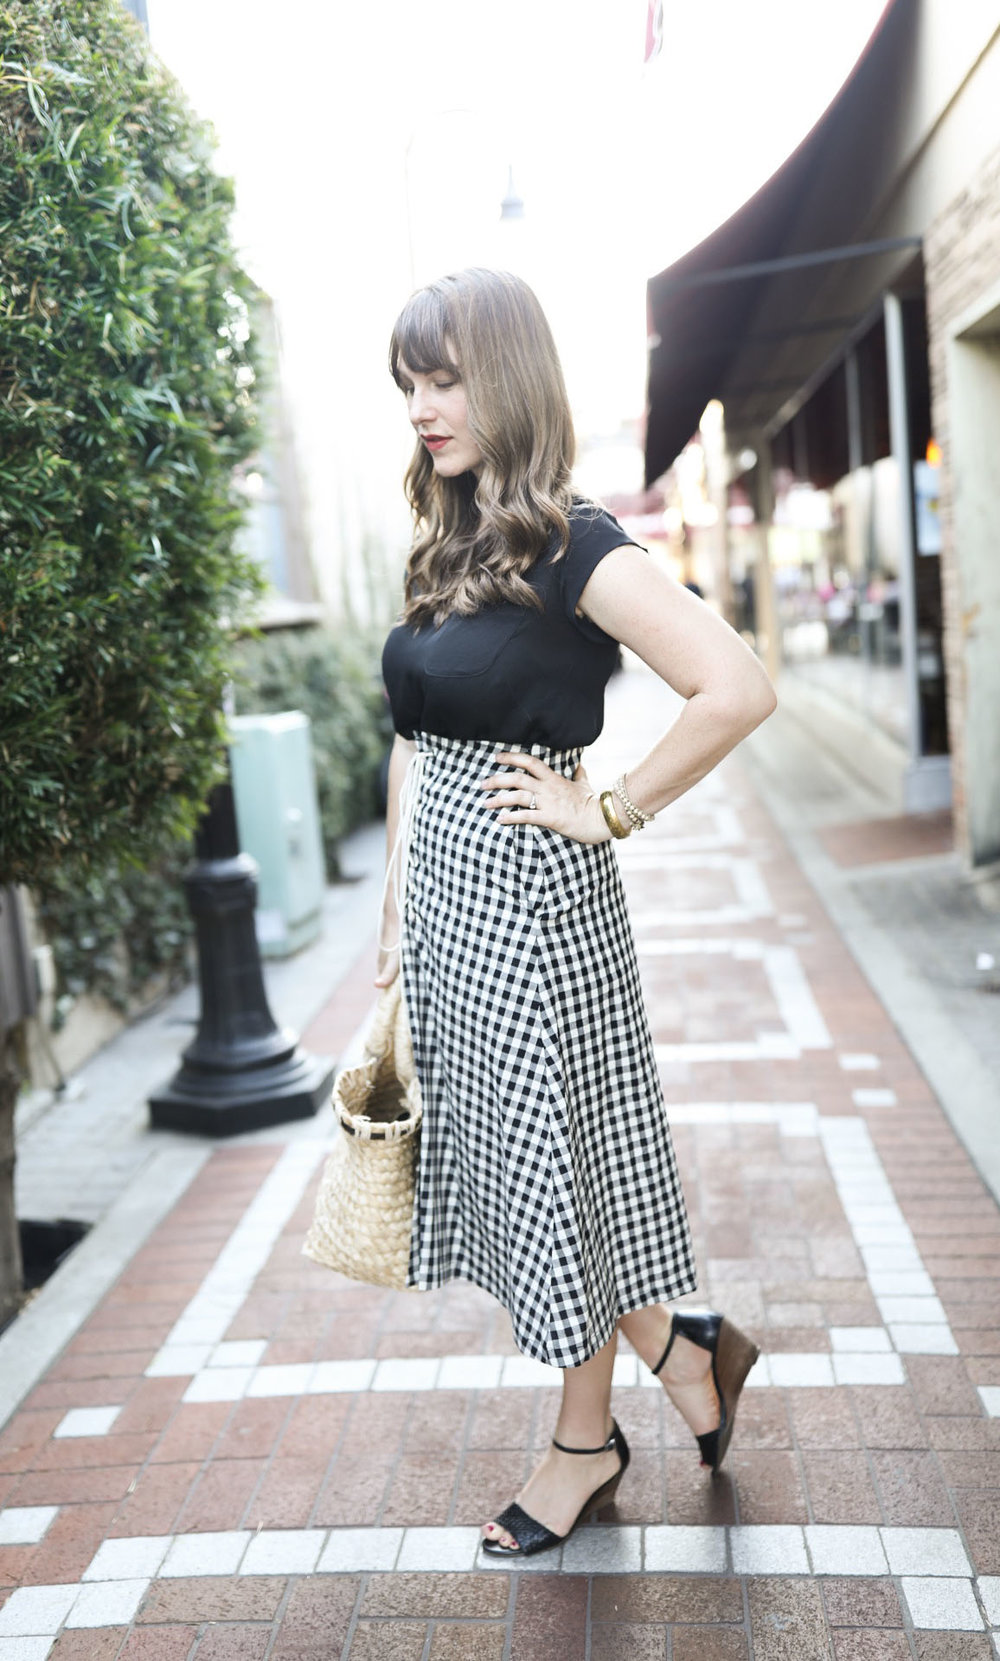 Black and White Check Gingham Skirt by Eva Franco (Made in USA) | Birds of a Thread